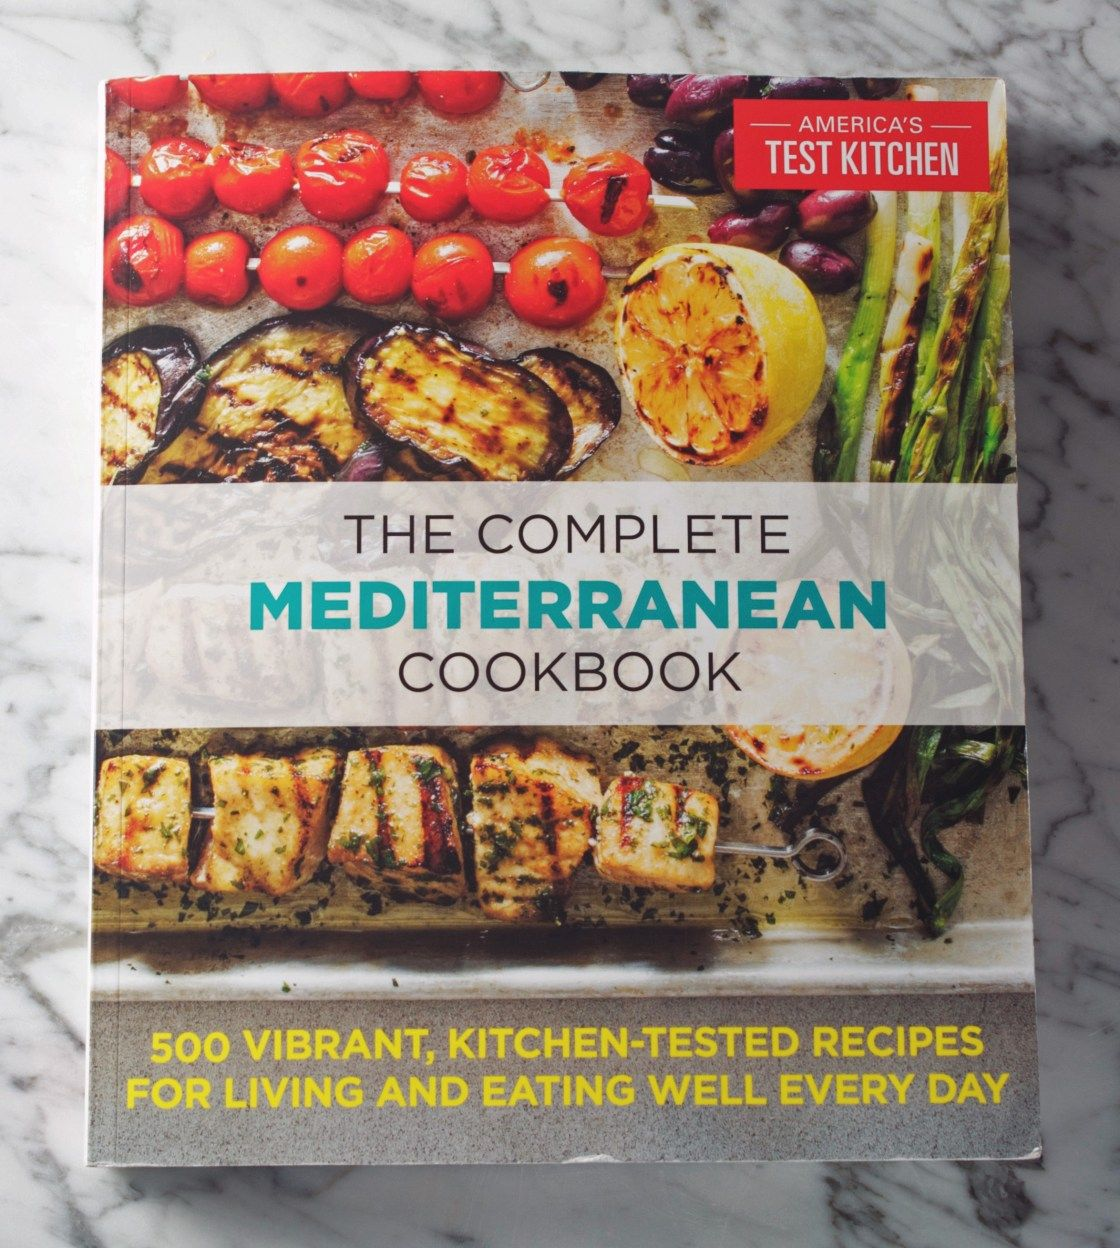 Bakes Eggs With Tomatoes Feta And Croutons Zestful Kitchen Recipe Mediterranean Diet Cookbook Mediterranean Cookbook Healthy Cook Books